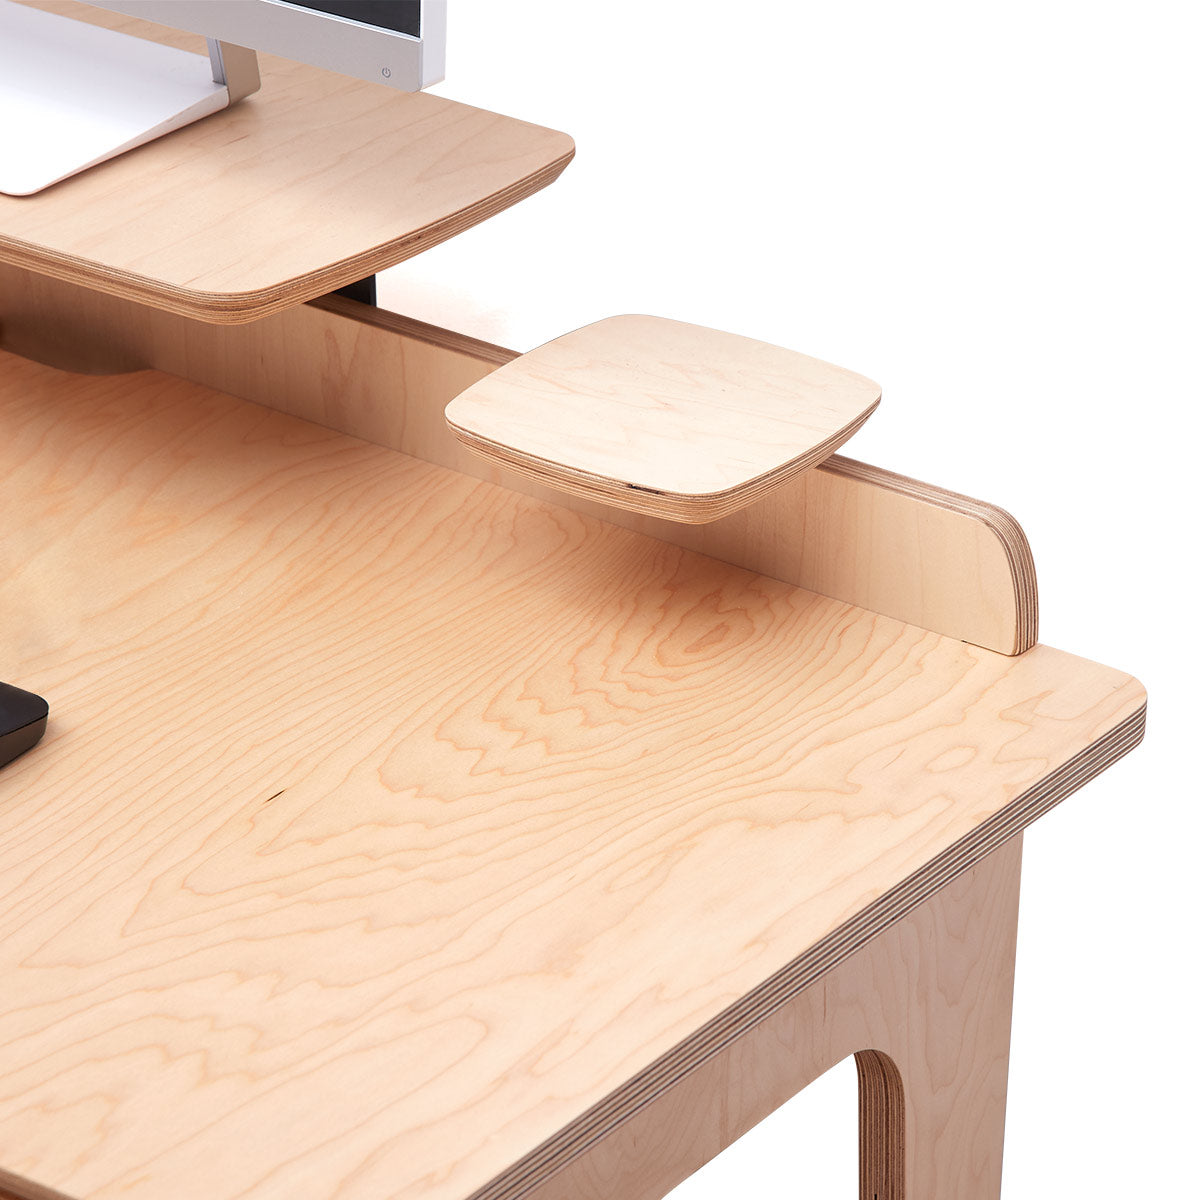 The Jorn Desk